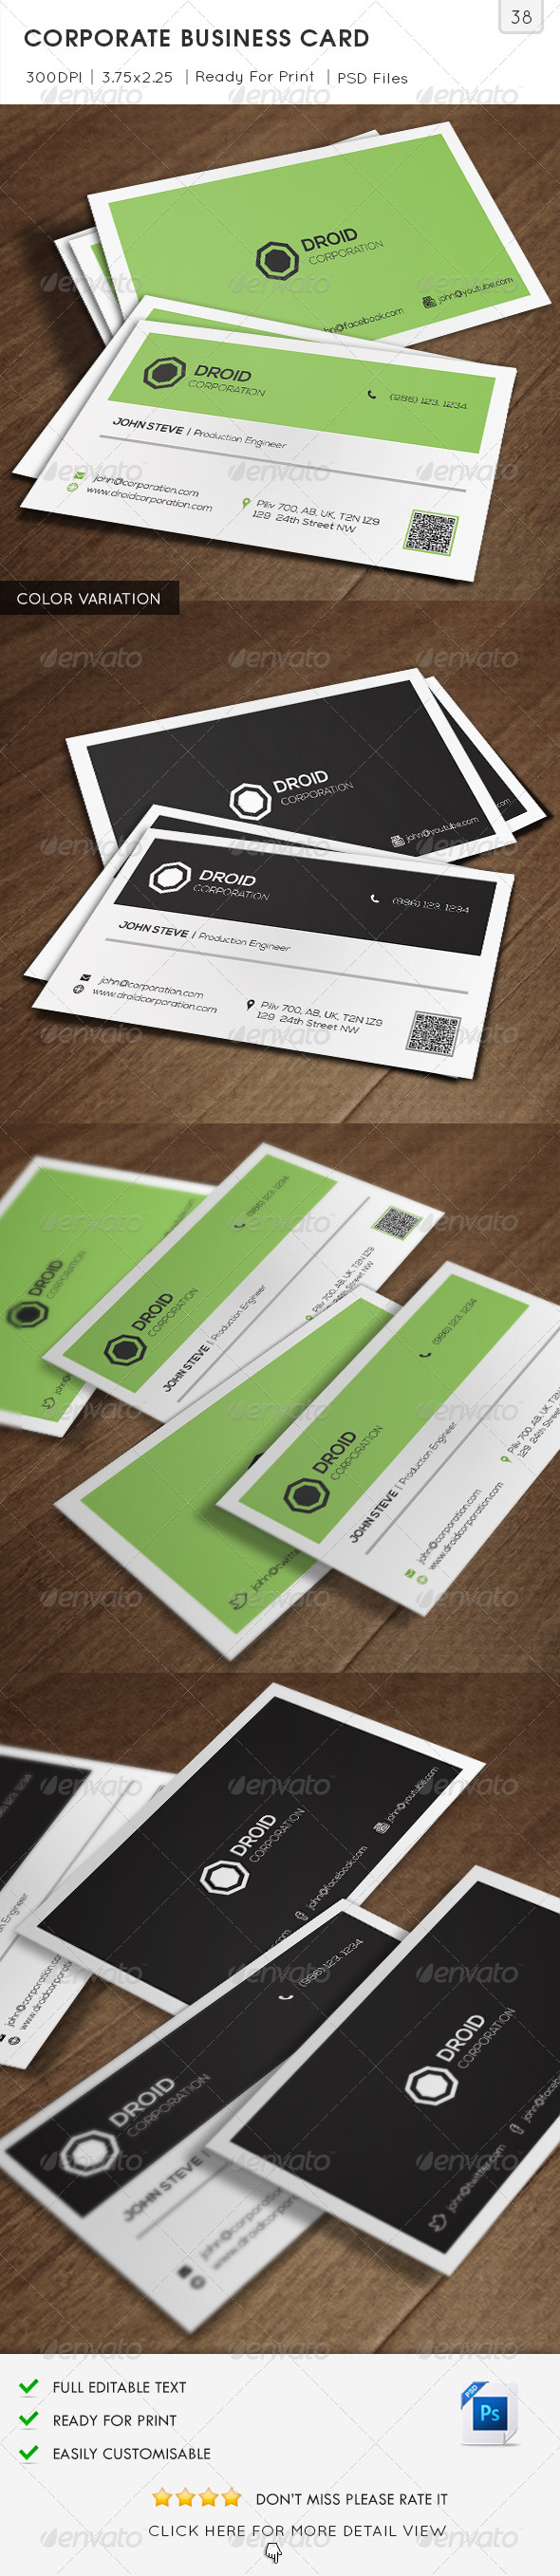 GraphicRiver Corporate Business Card v38 6501867